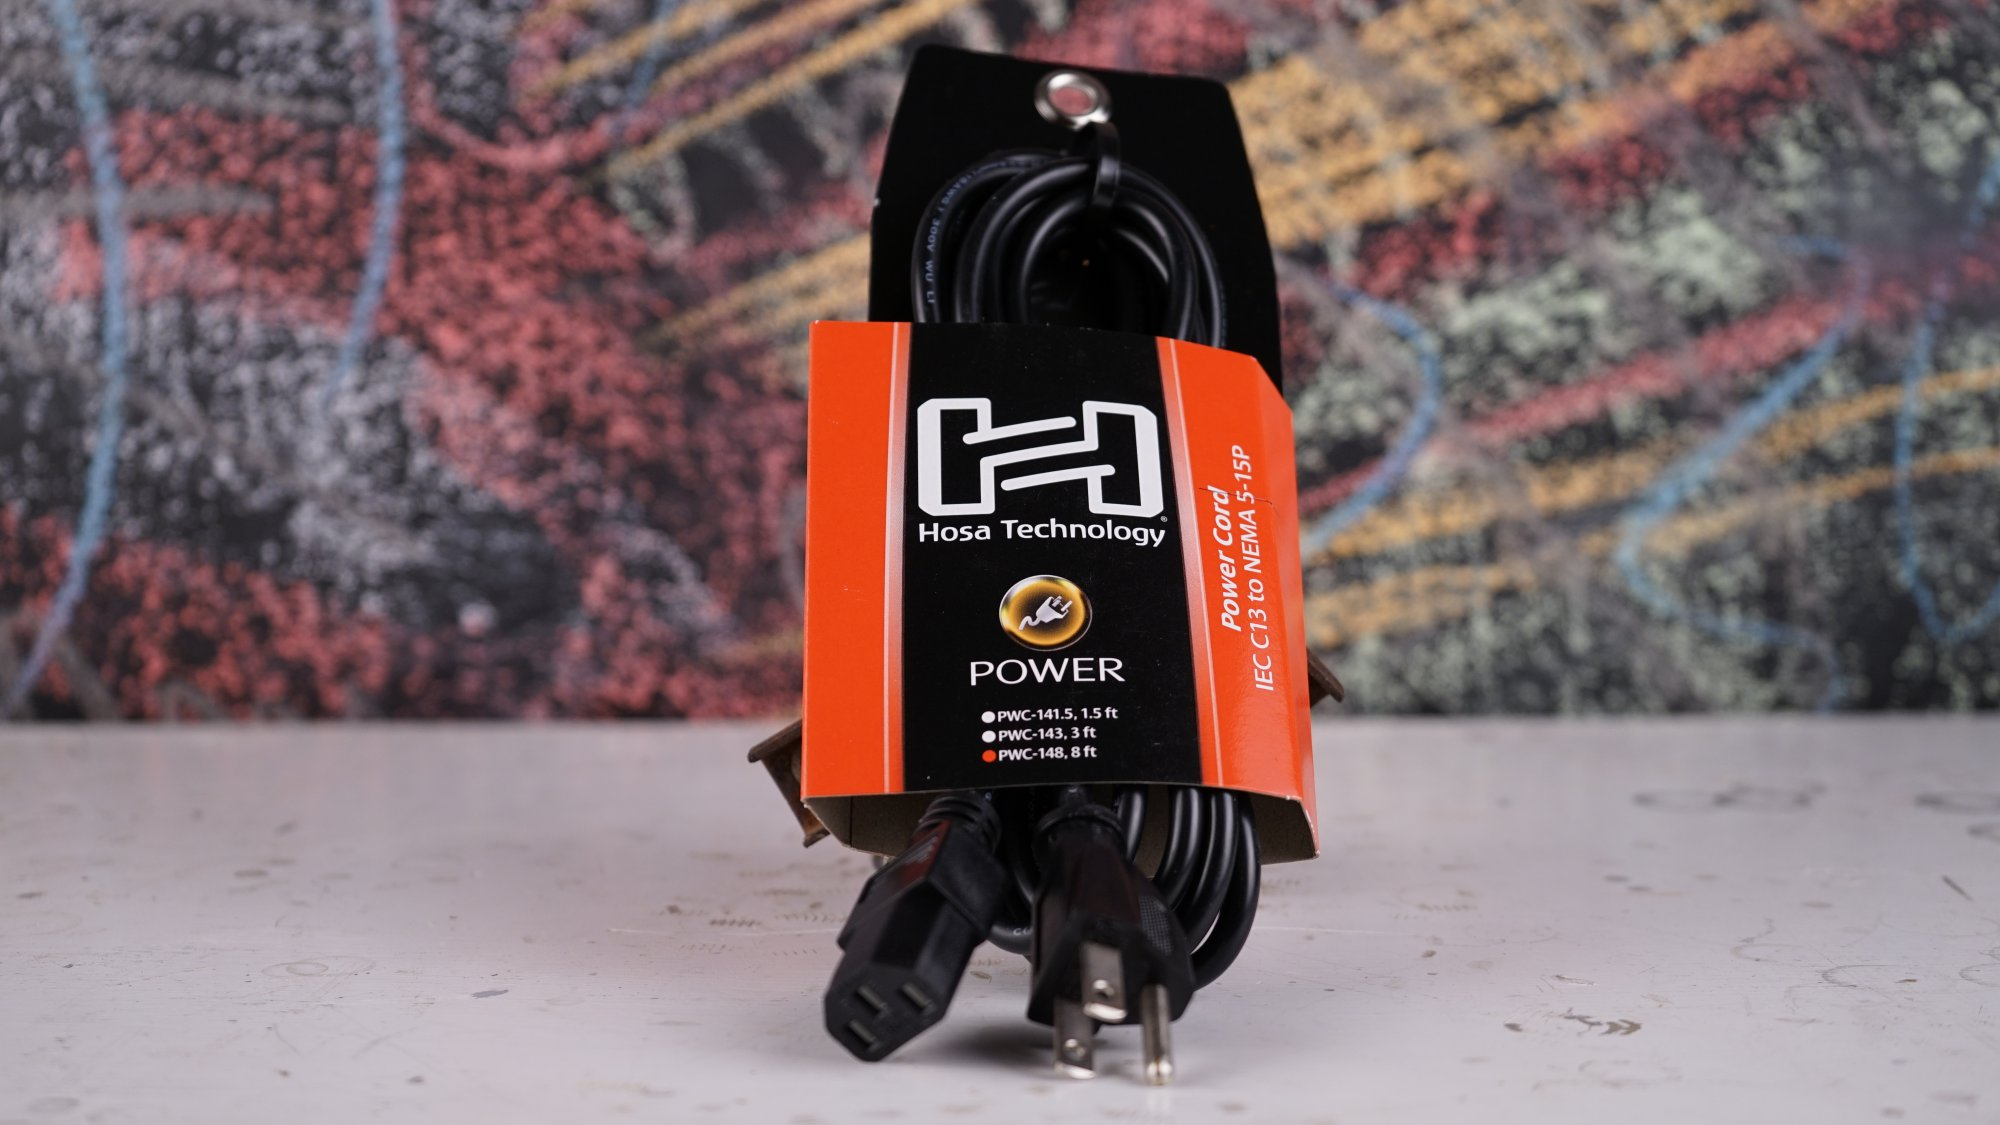 Hosa Grounded Power Cable 8' PWC-148